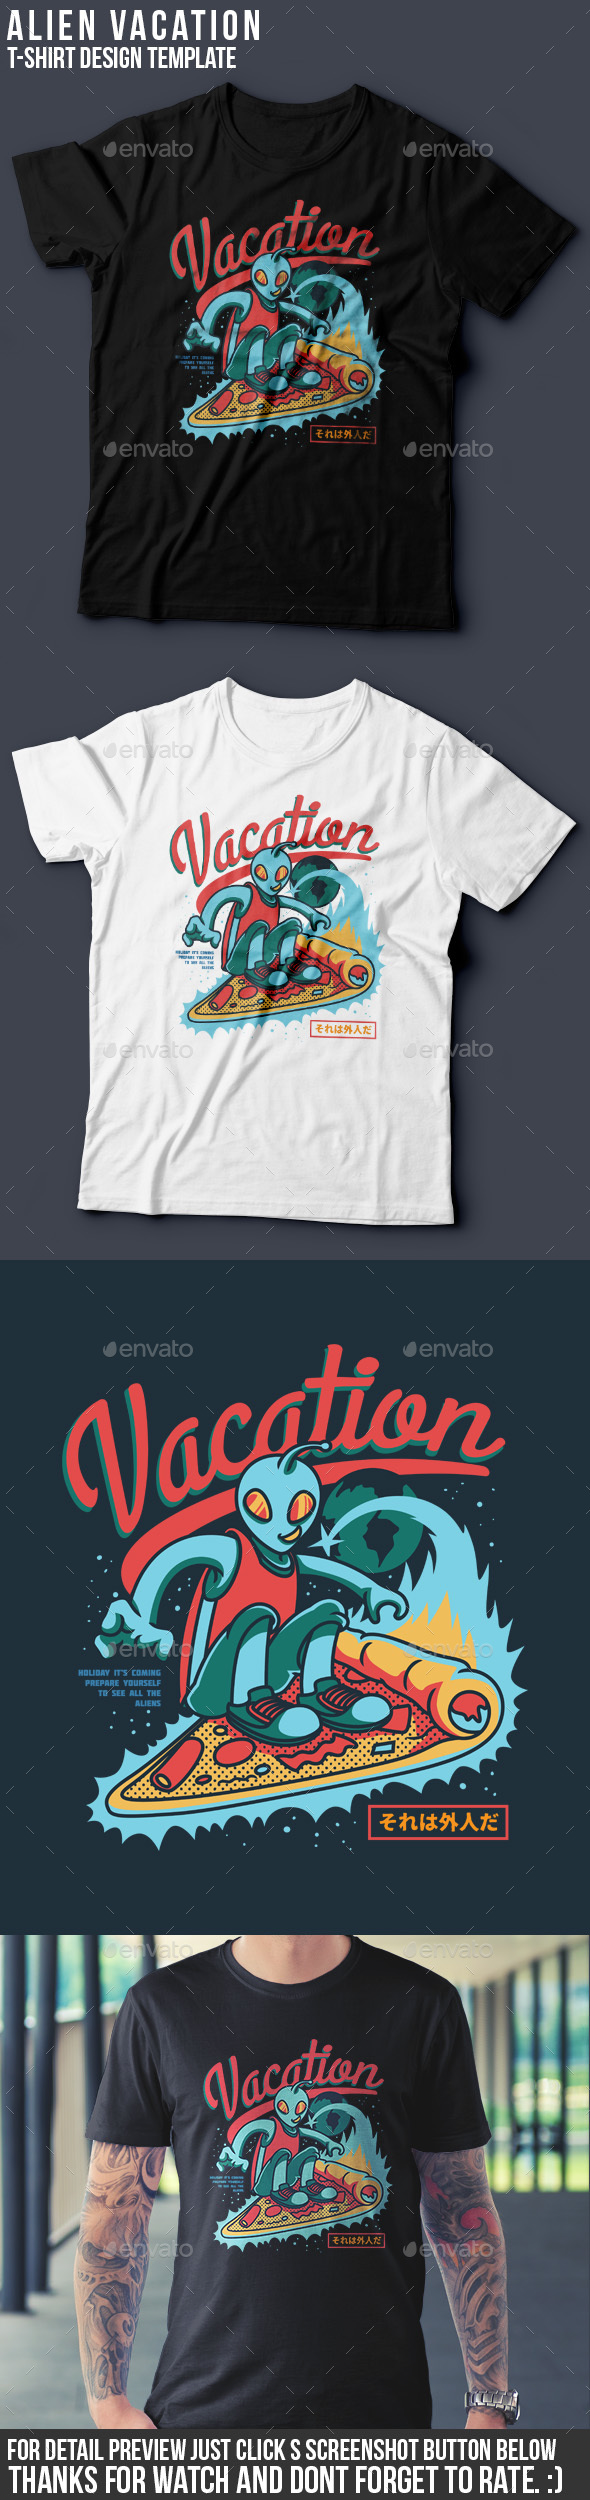 Vacation T-Shirt Design - Clean Designs